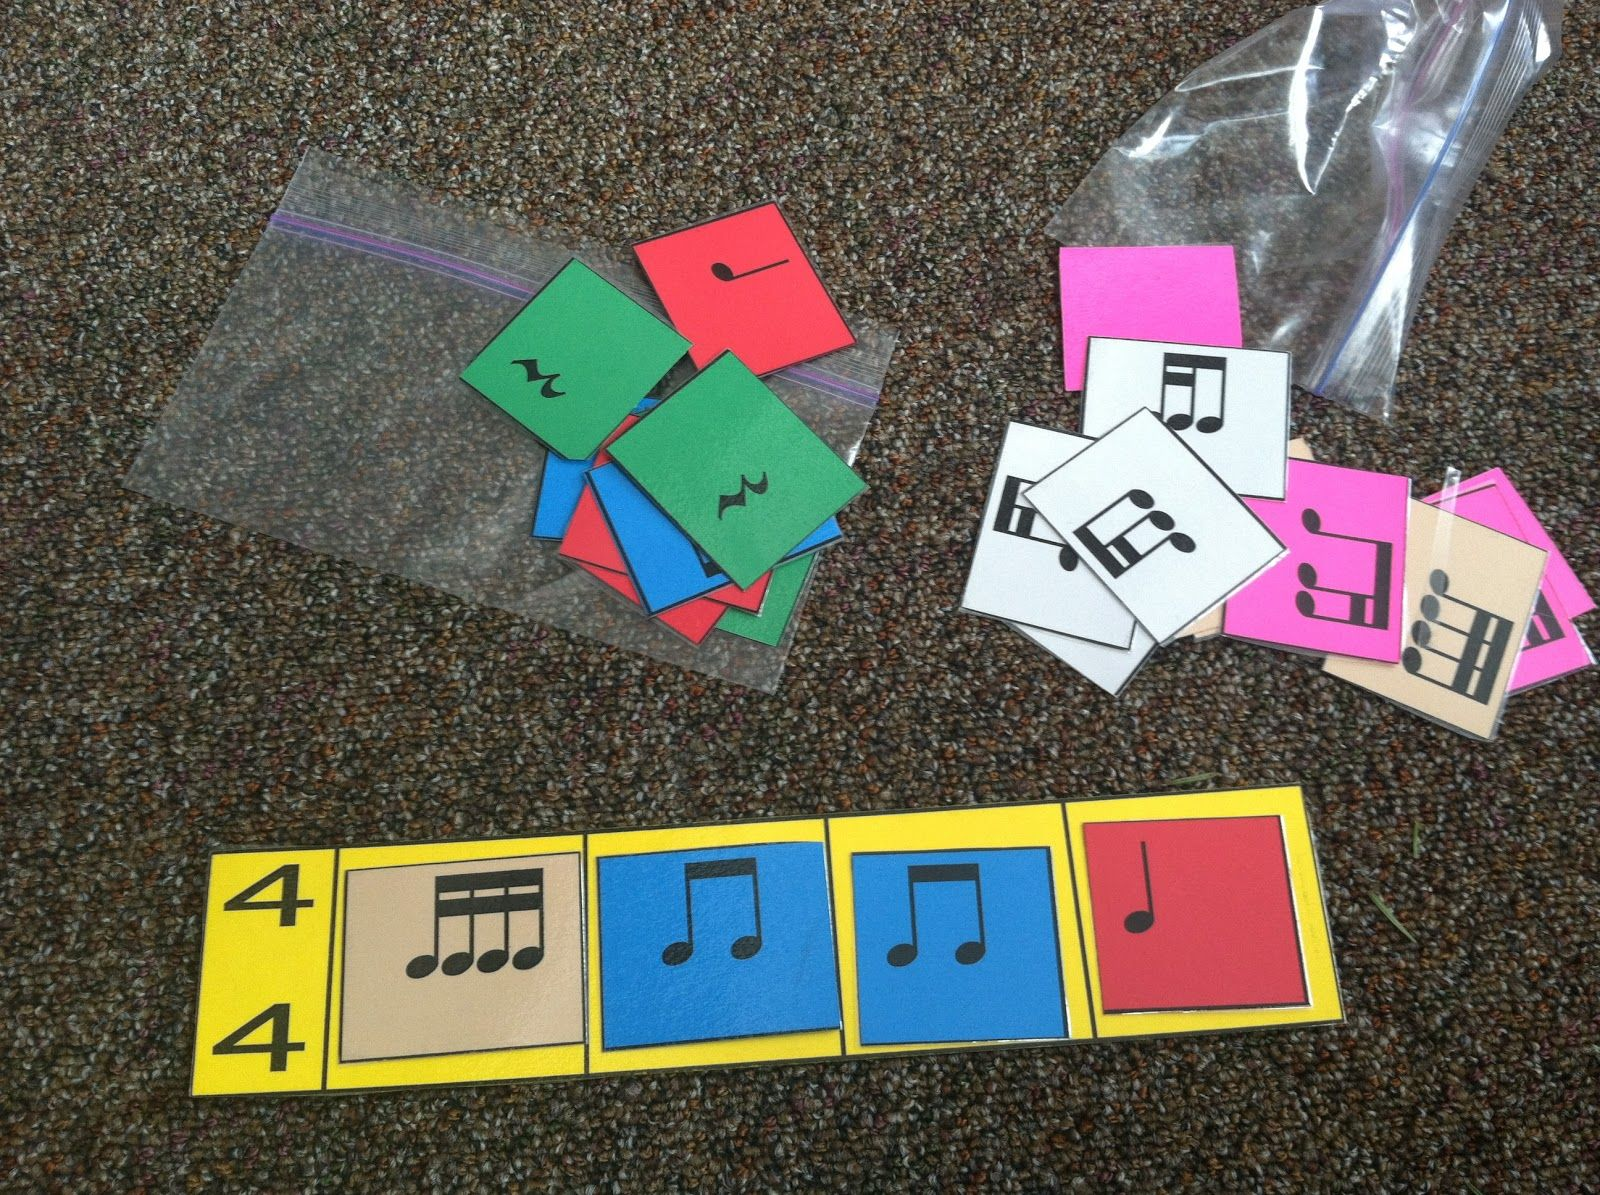 Measure Cards I Use These In My Classroom And It Is A Great Way For The Students To Manipulate